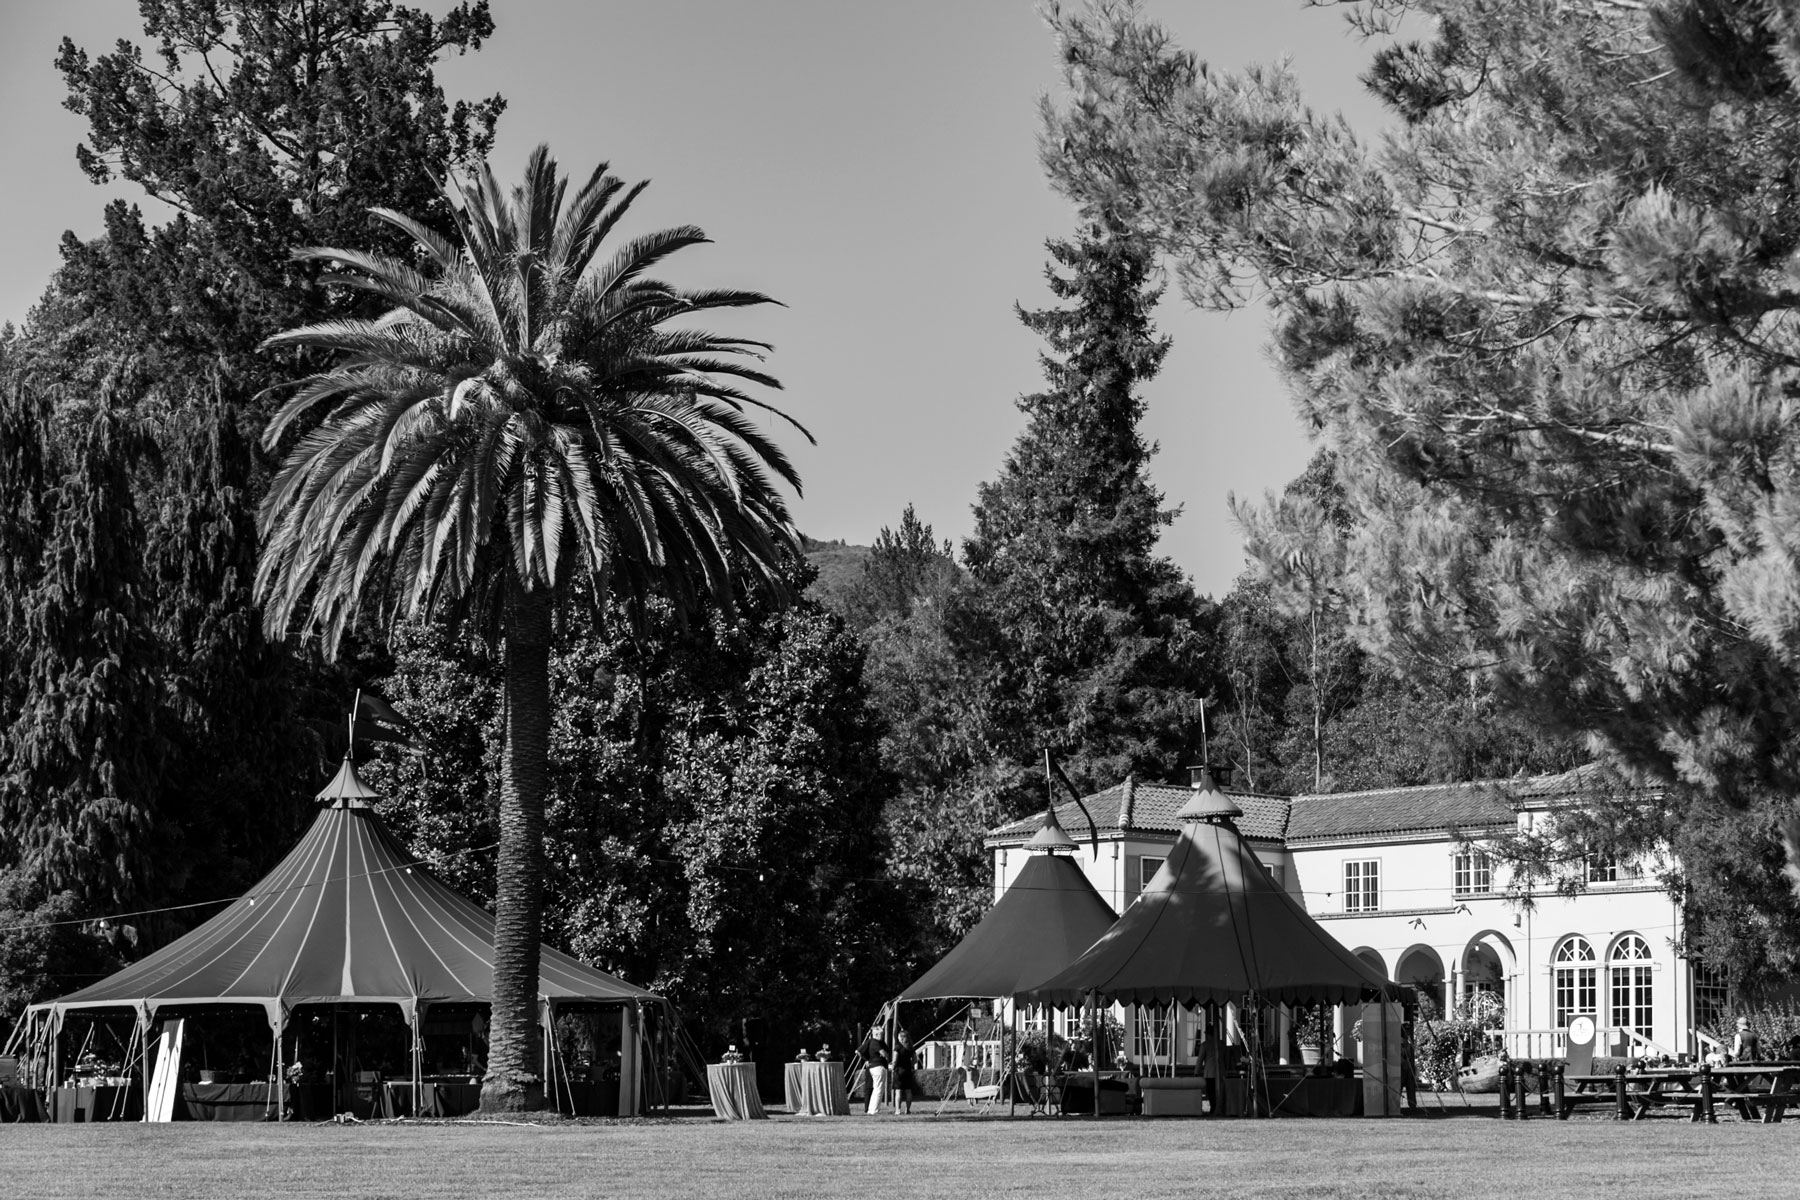 Chateau-St-Jean-Events-1-Sonoma